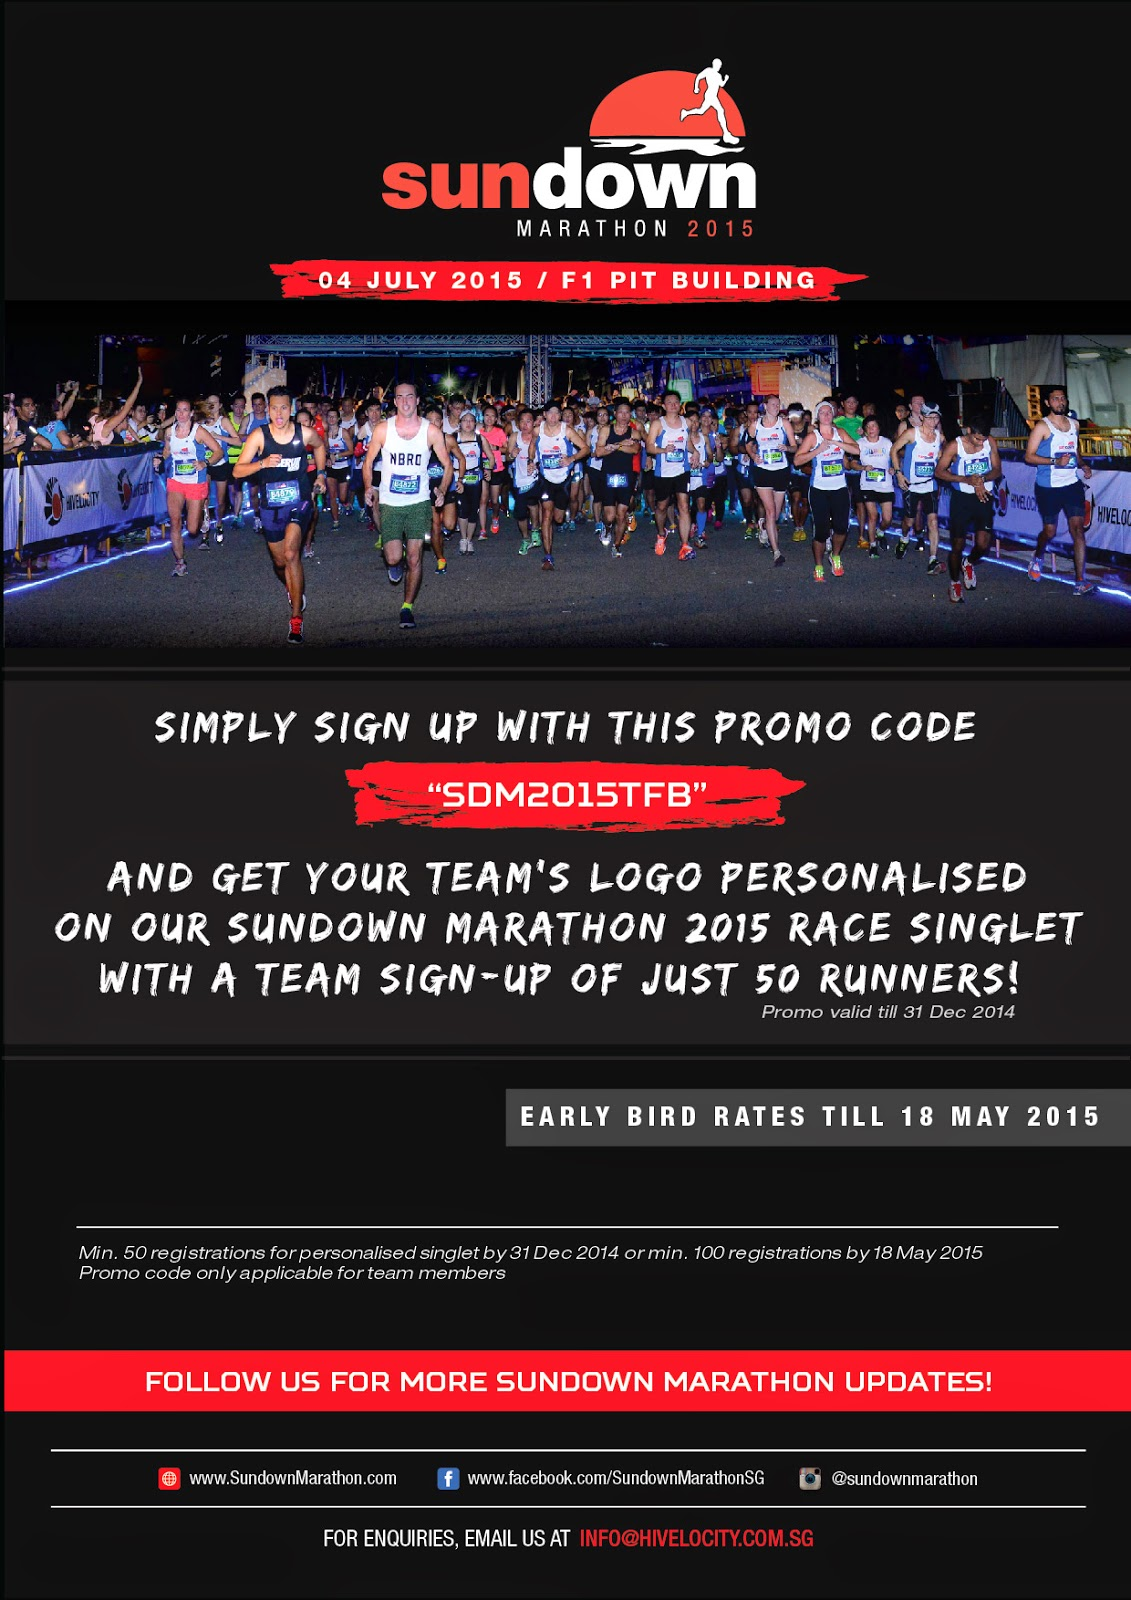 FatBird Rates For Sundown Marathon 2015